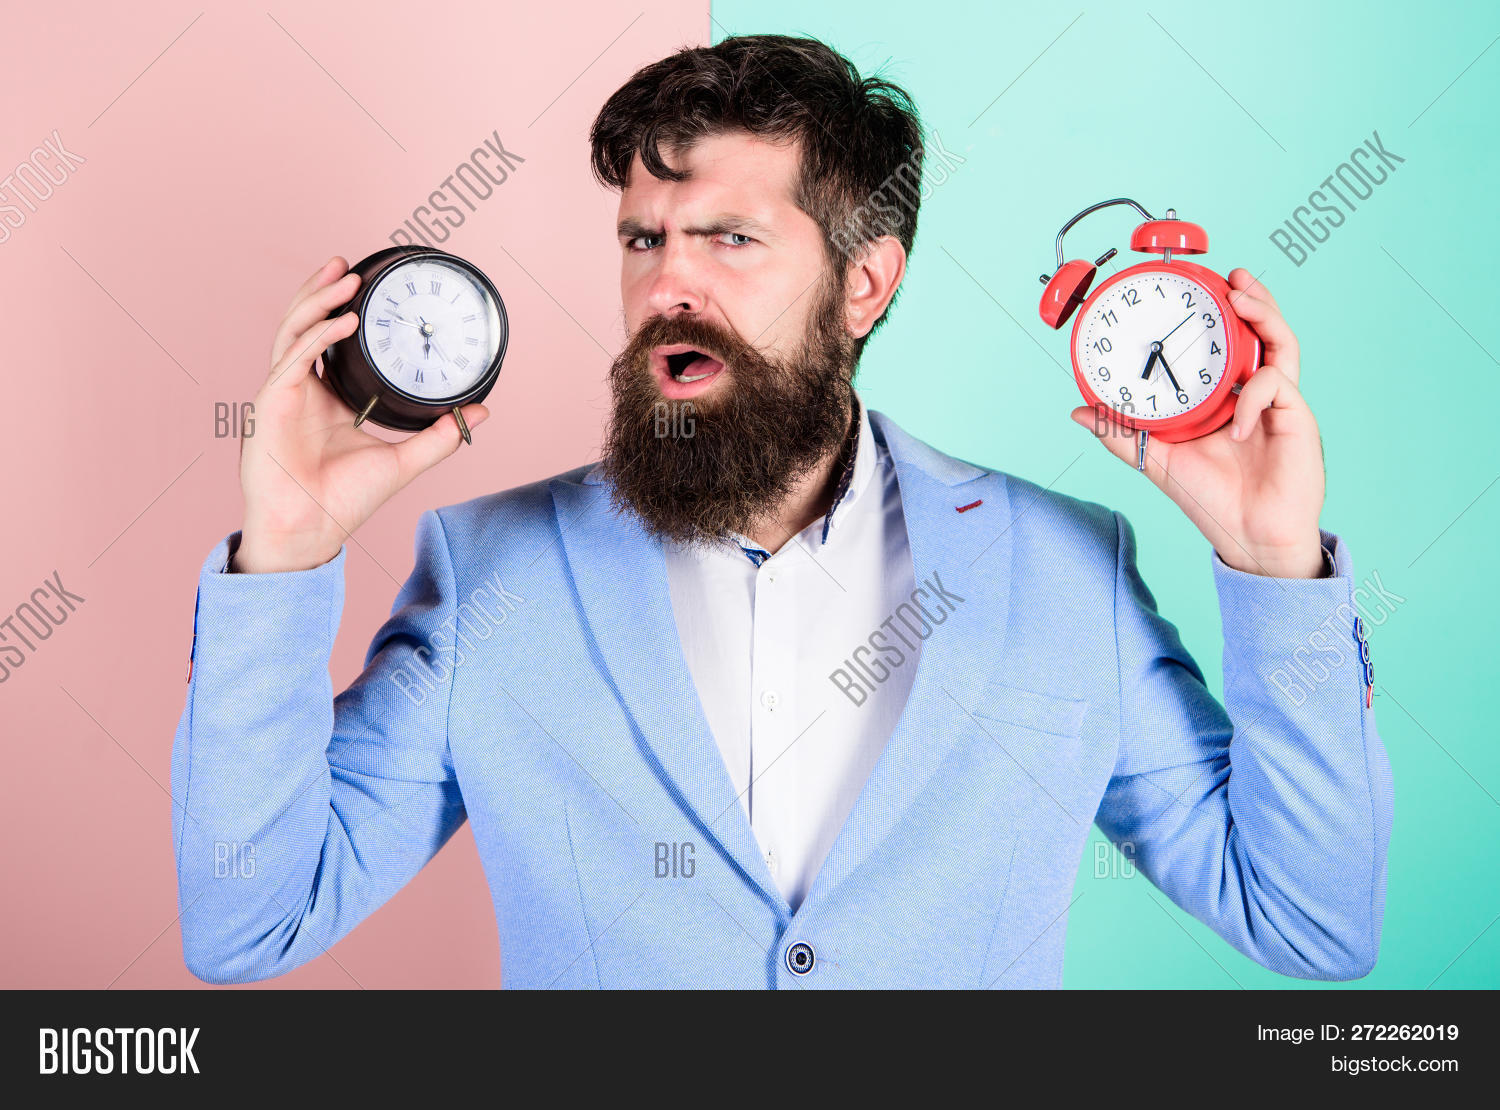 adult,affect,background,bearded,business,businessman,caucasian,ceo,changing,clocks,different,director,does,employer,face,fashion,formal,guy,handsome,having,health,hipster,hold,leader,man,mess,mustache,outraged,problems,punctuality,puzzled,regime,schedule,stressful,style,suit,time,timeless,two,unshaven,watch,your,zones